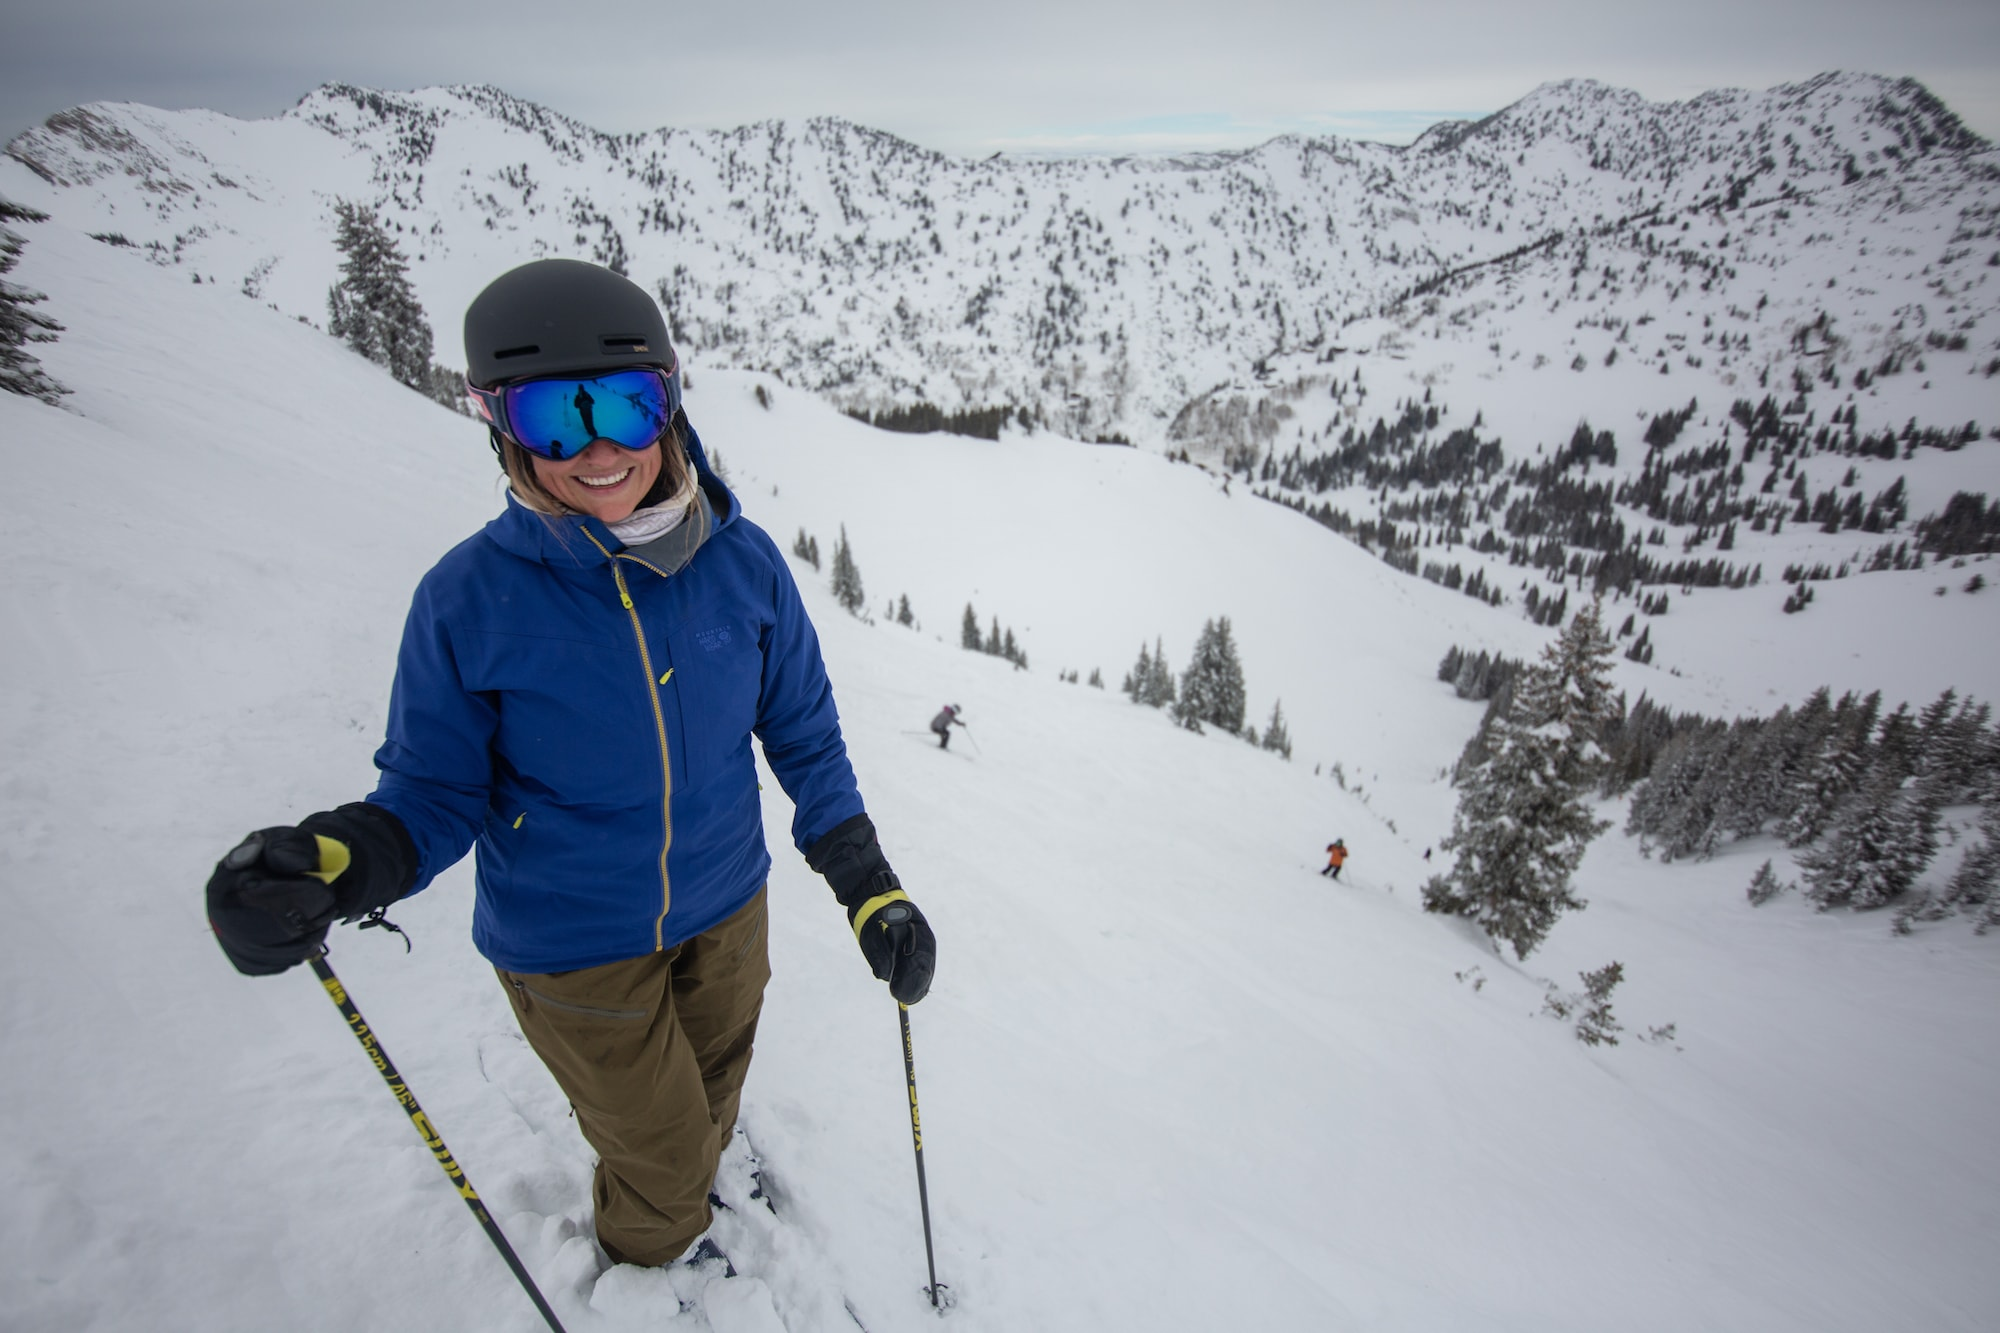 Learn about my experience in the Alta Ladies Day Program, a 6-week all-female class where you focus on technique and exploring new terrain at Alta Ski Area.